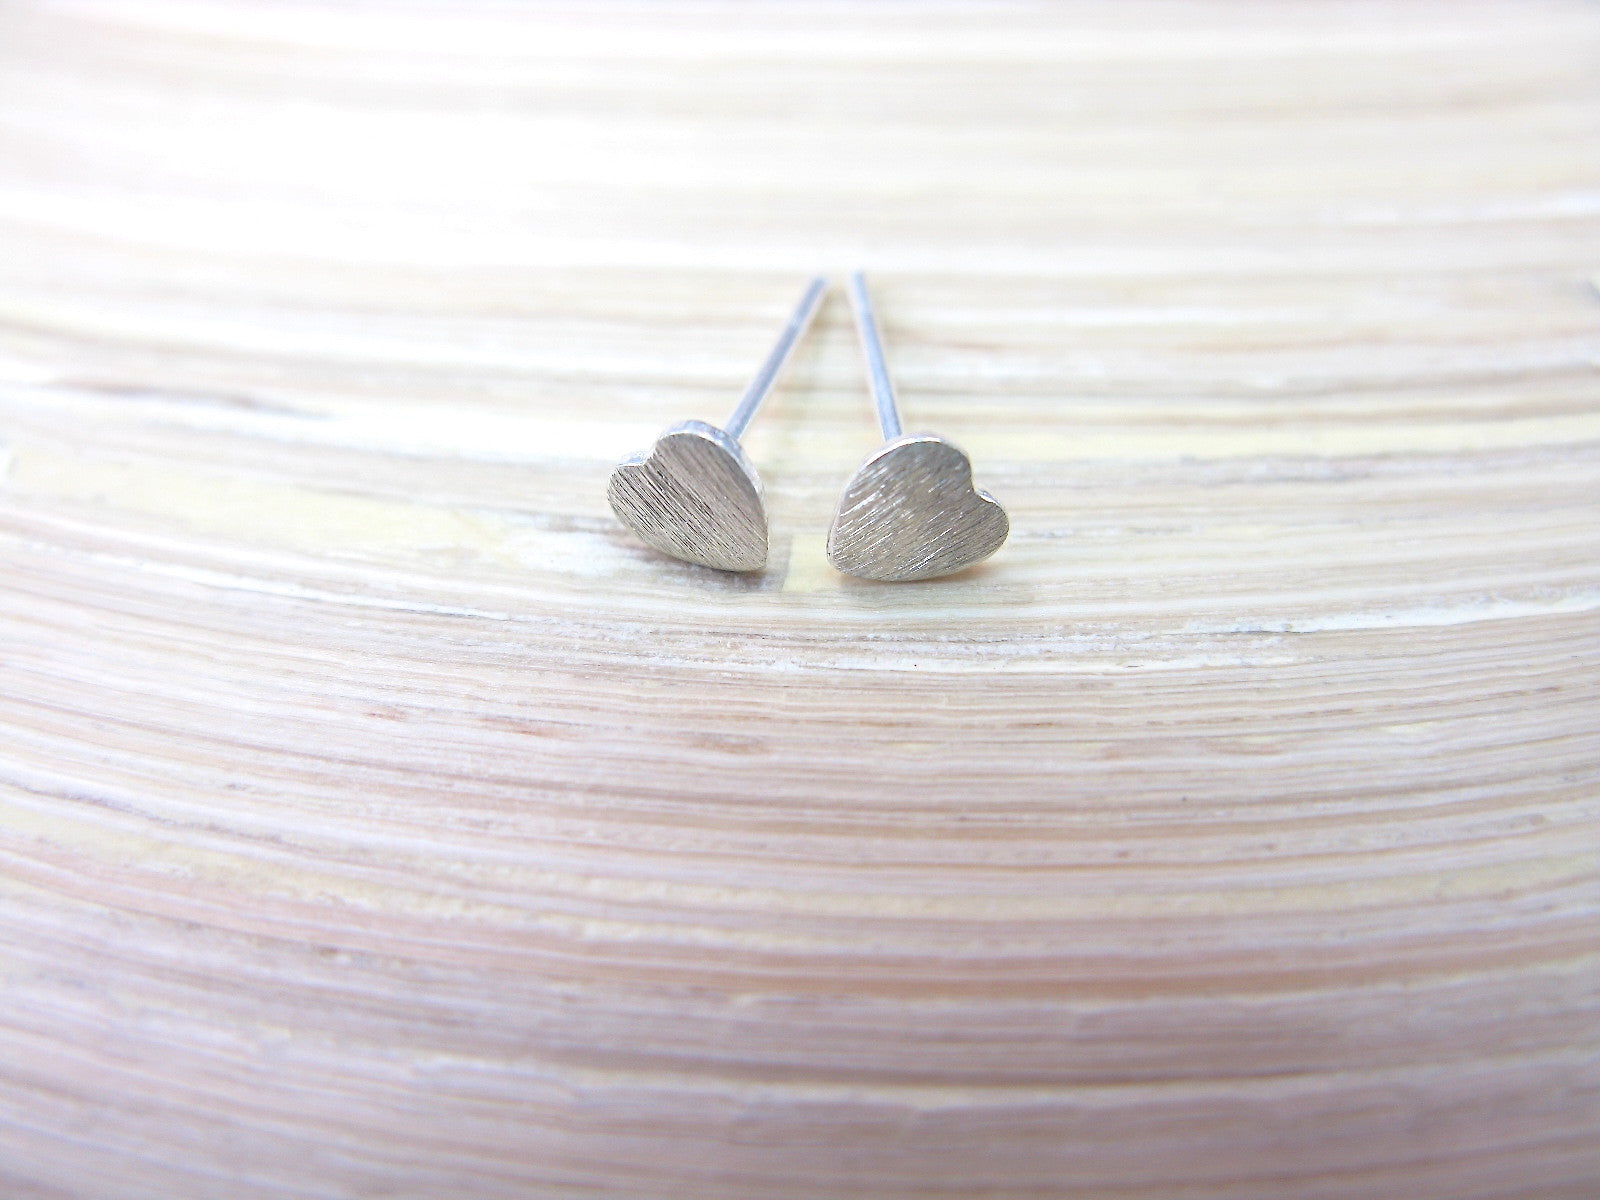 Tiny Heart 925 Sterling Silver Minimalist Stud Earrings